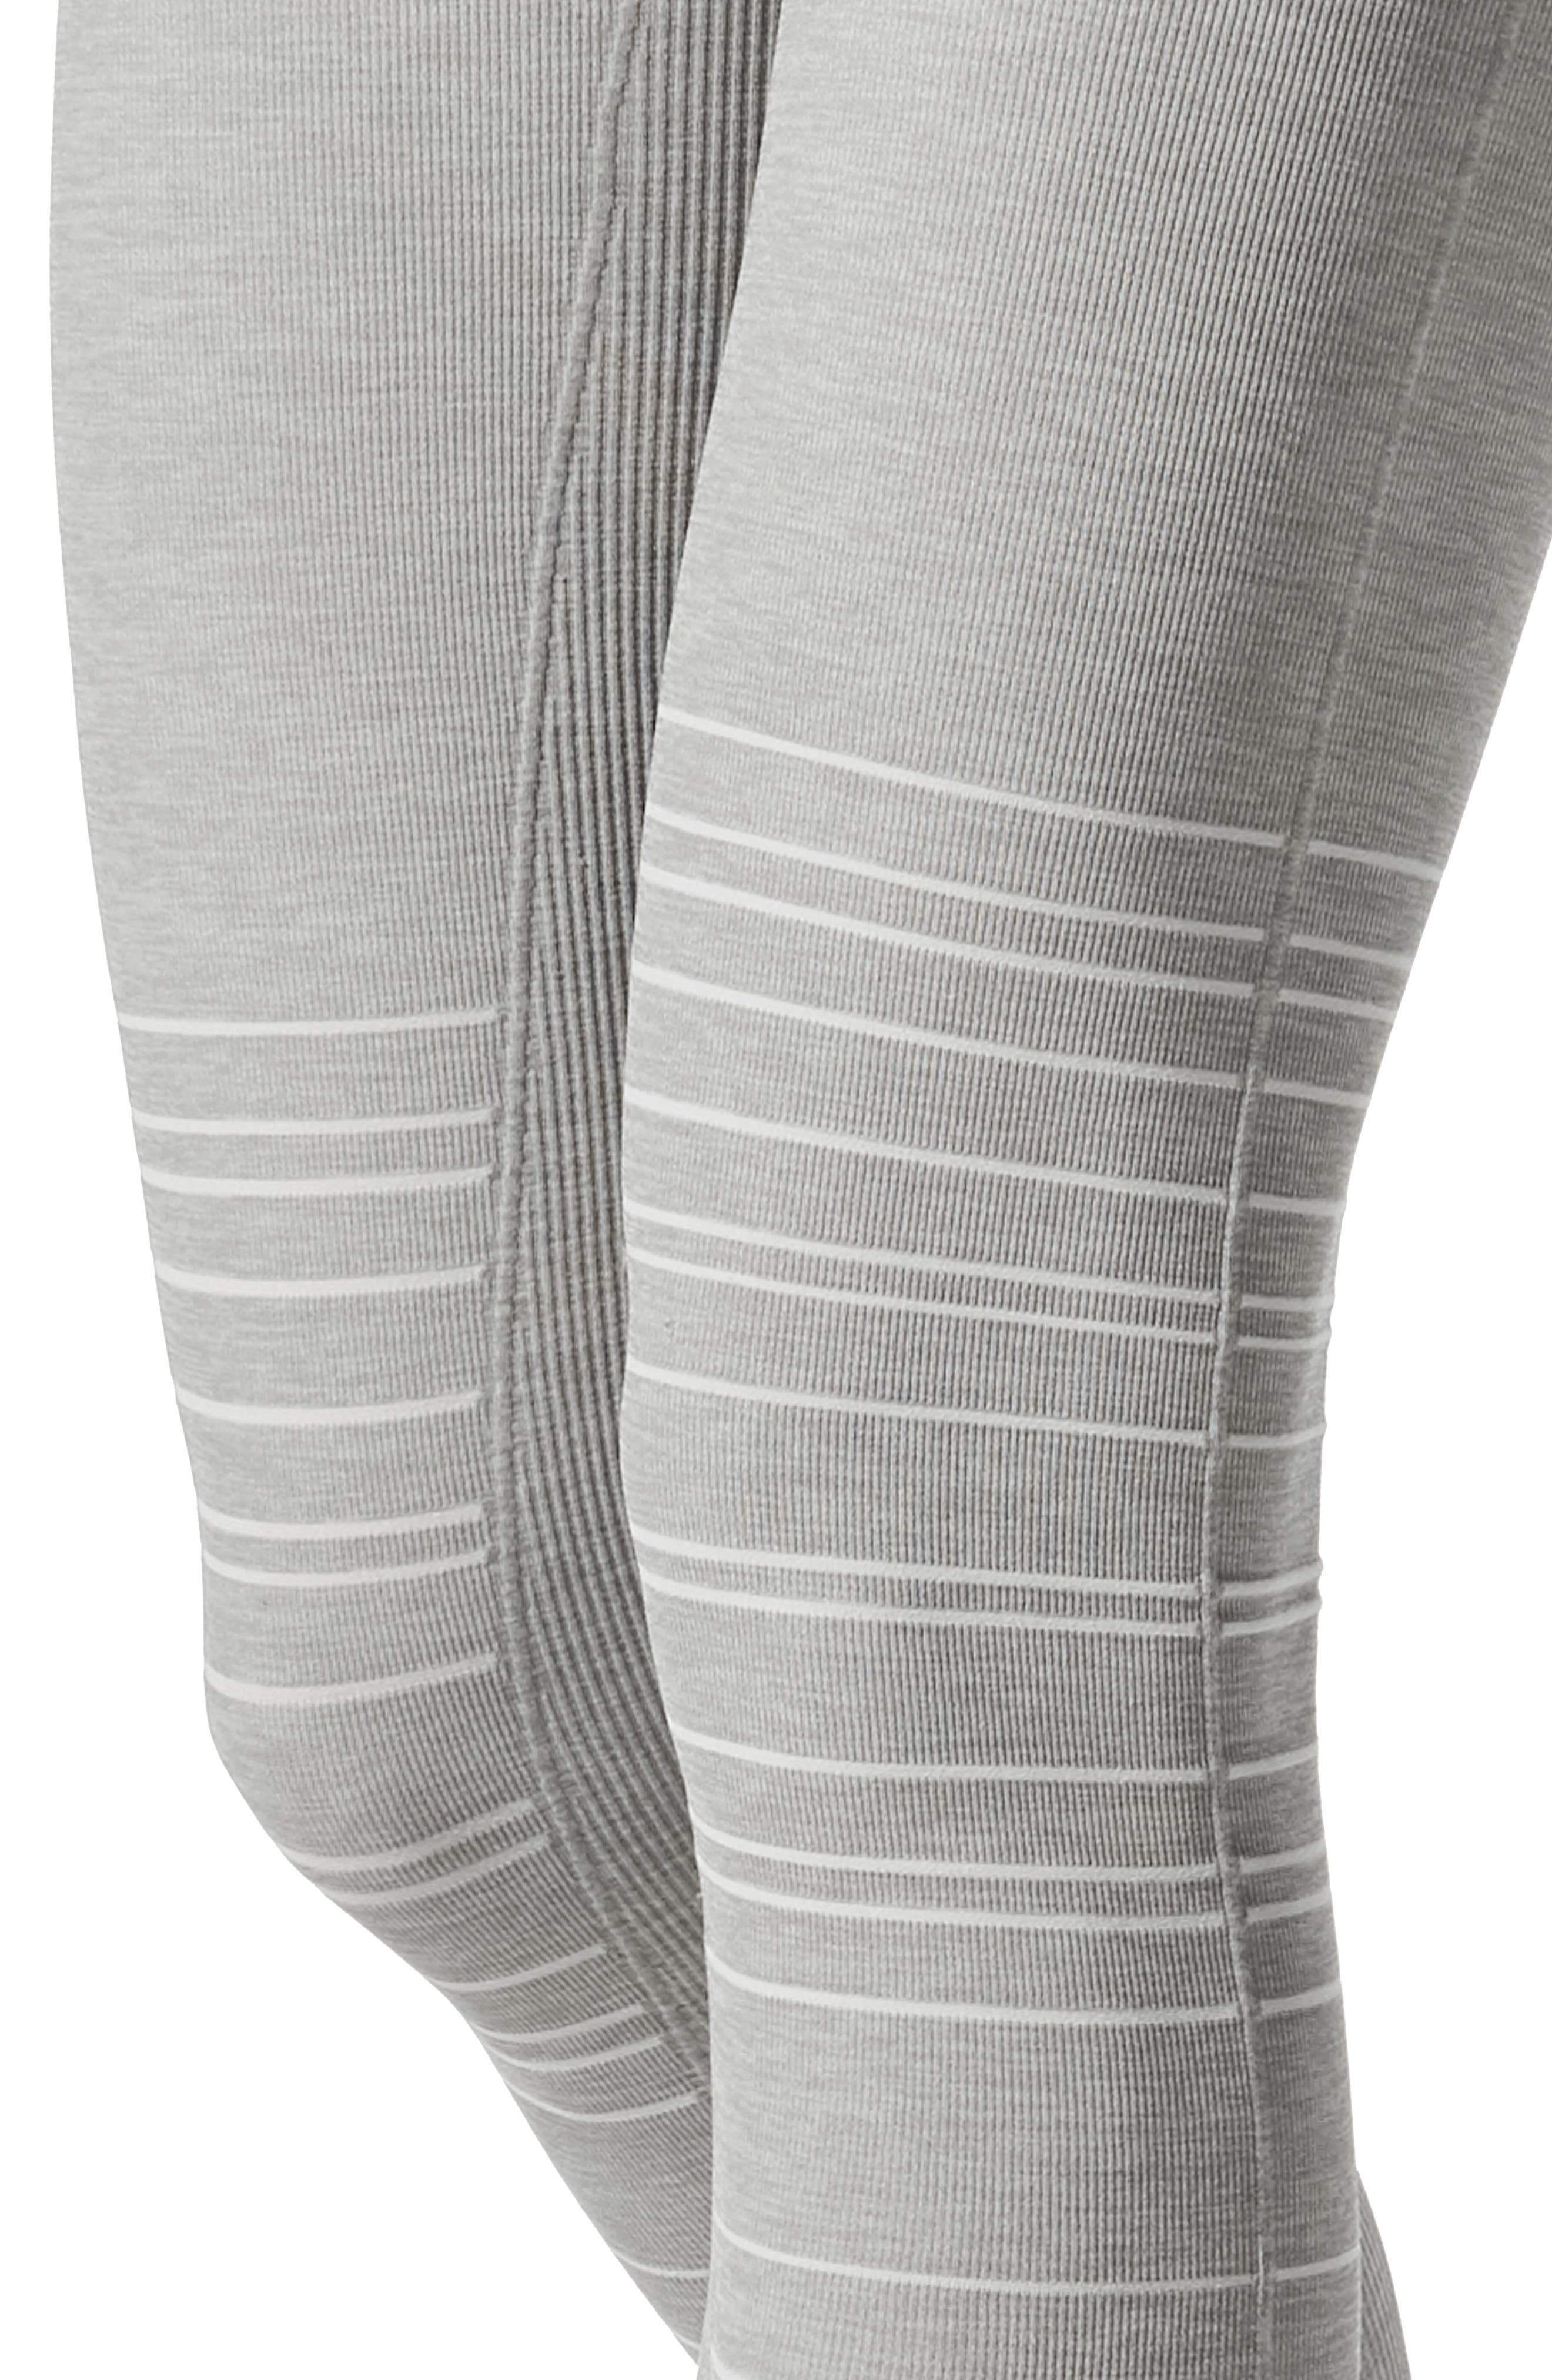 SportSupport<sup>®</sup> Hipster Cuffed Support Maternity/Postpartum Leggings,                             Alternate thumbnail 3, color,                             DOVE GREY